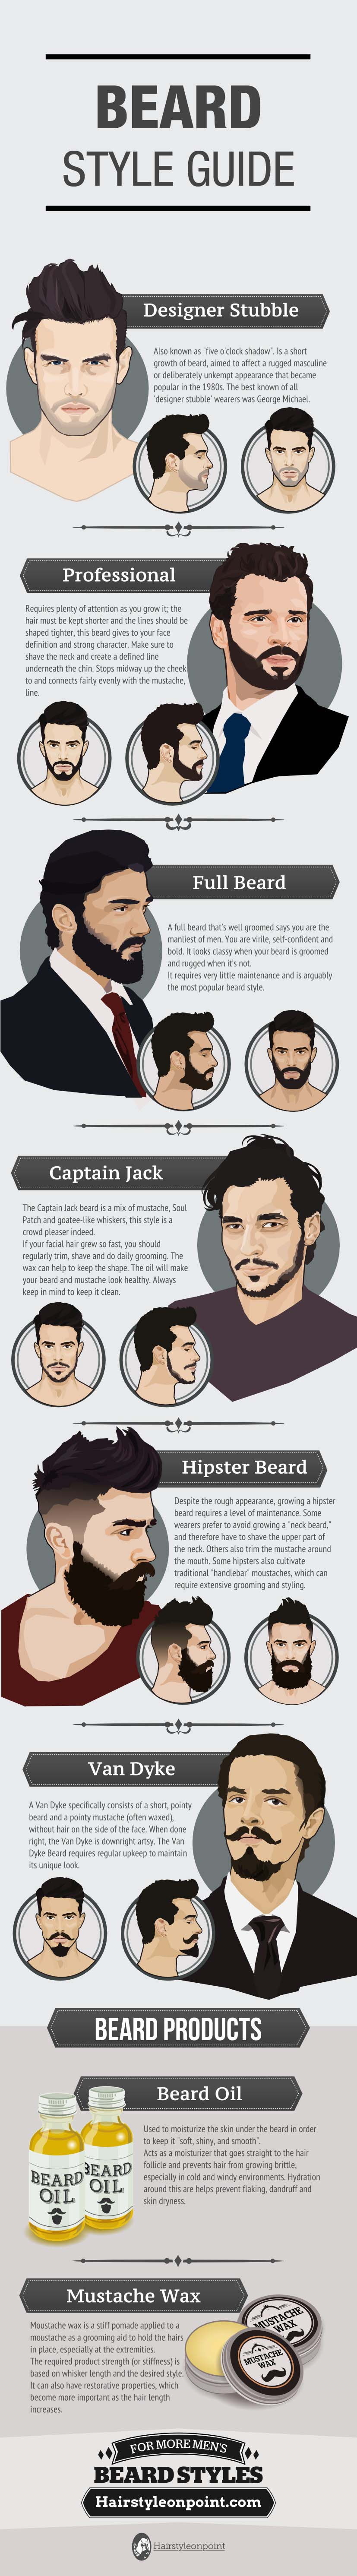 MAN'S GUIDE TO BEARD STYLE